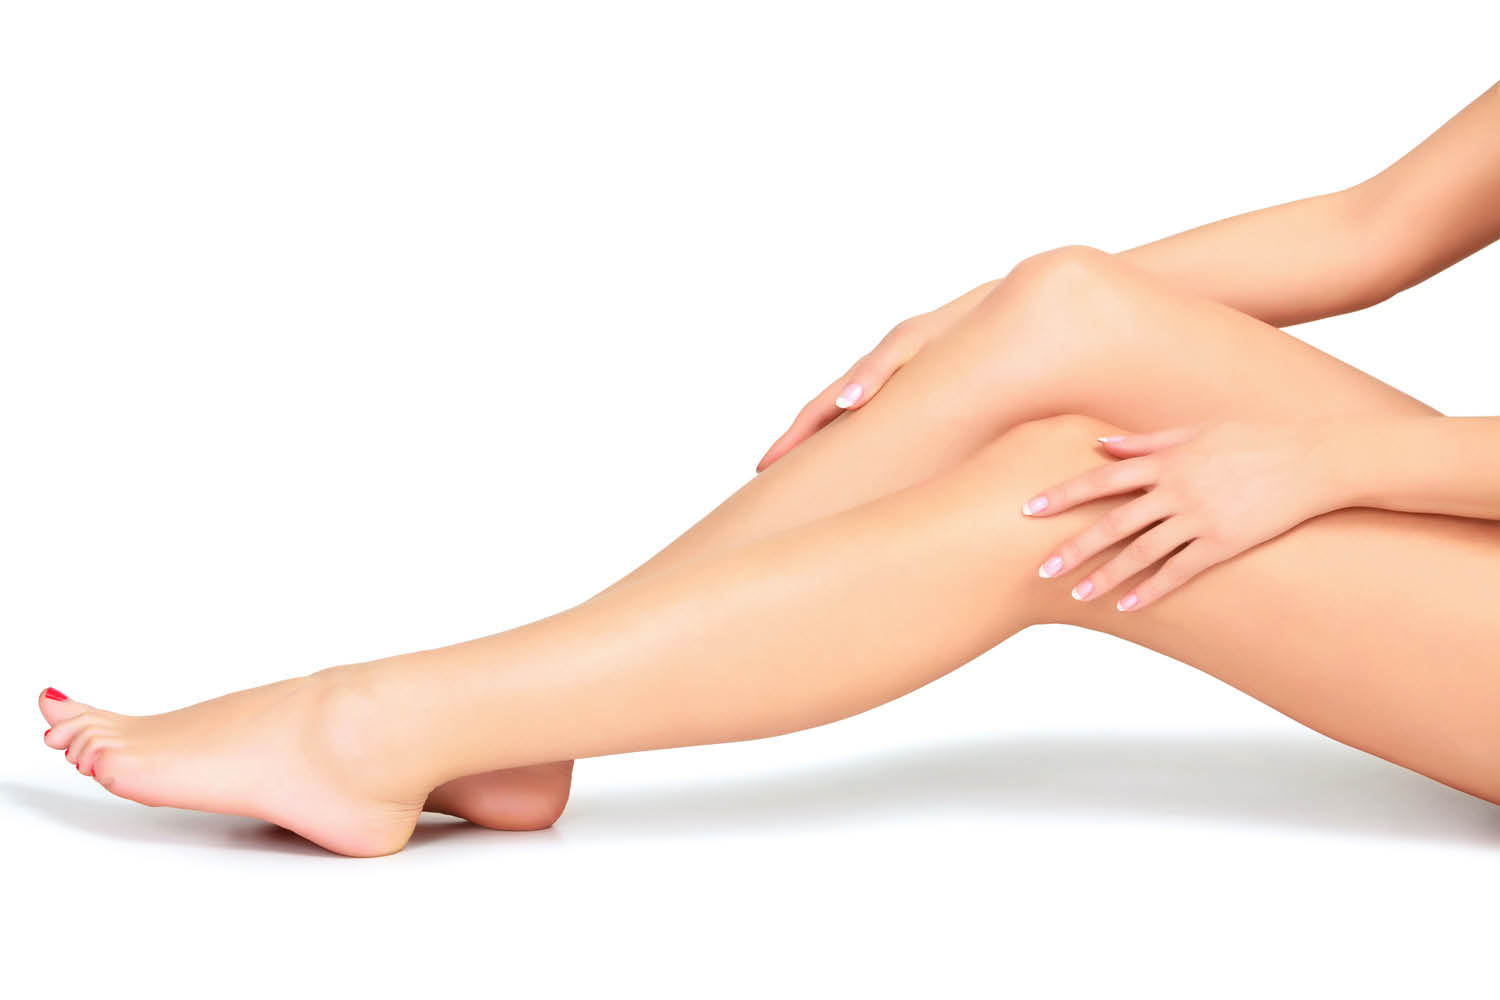 waxing services save on waxing save on leg waxing hair removal coupon save on professional hair removal save on professional waxing services beach ready legs